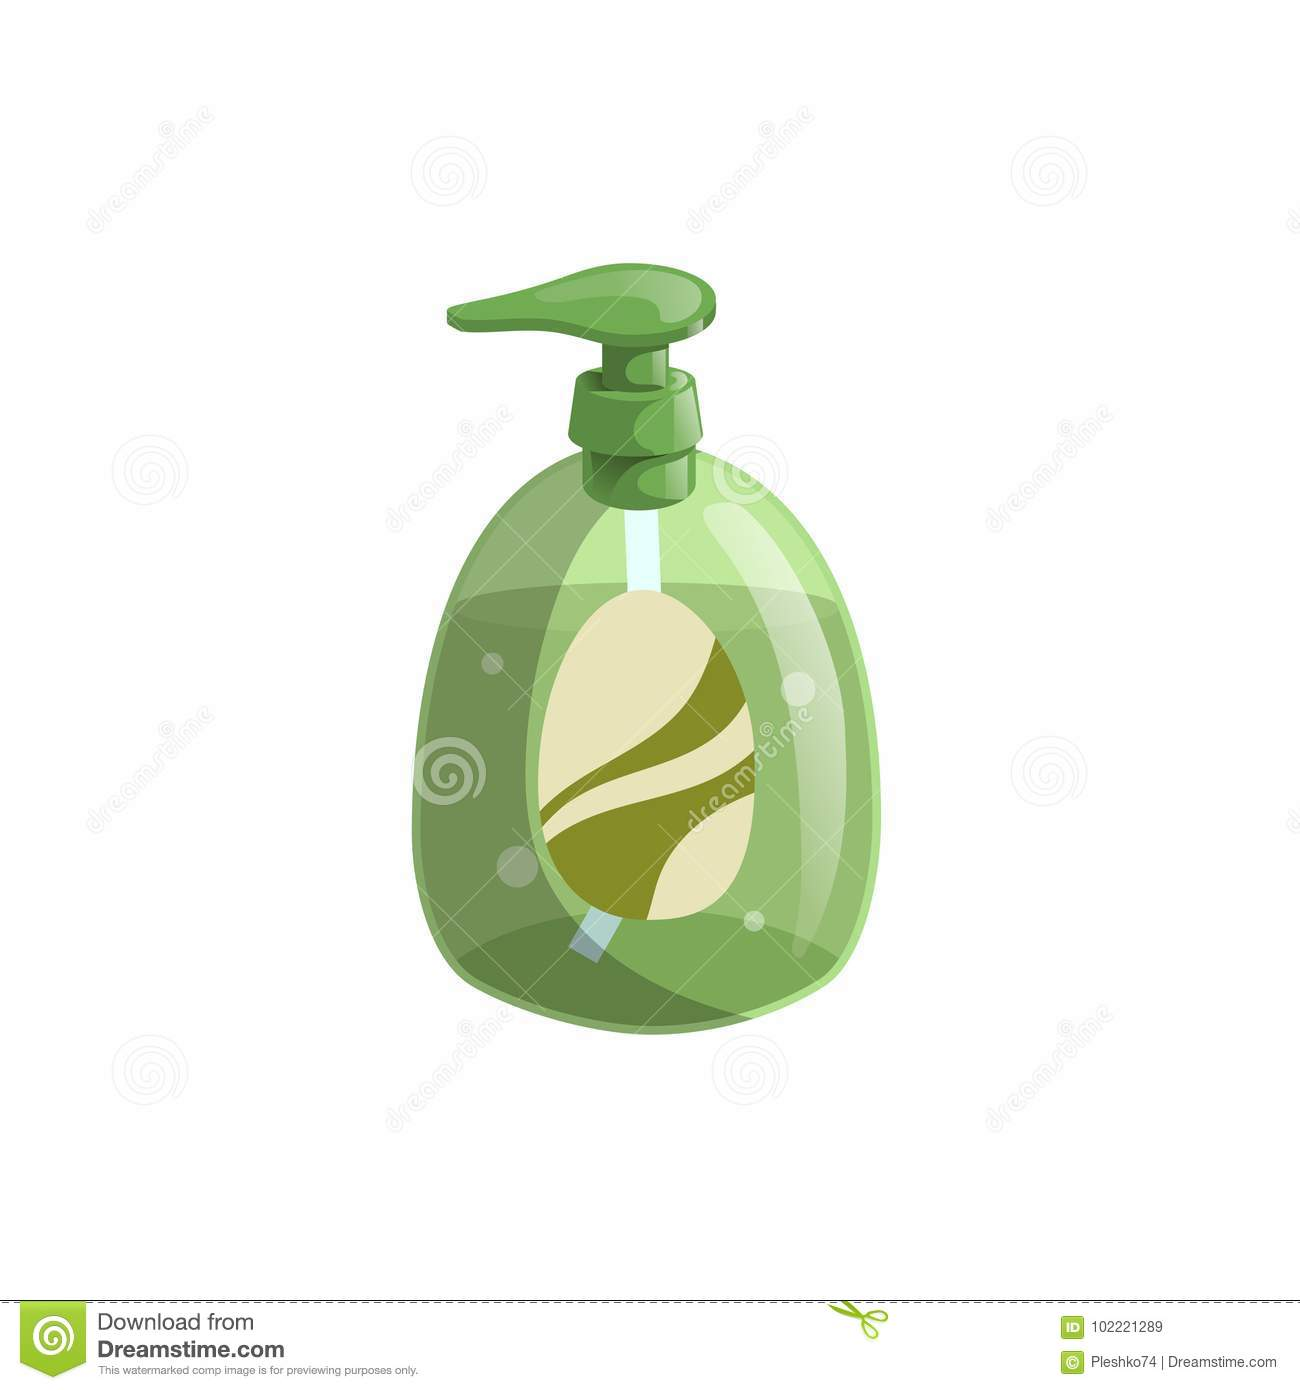 Trendy Cartoon Style Green Liquid Soap Bottle With Dispenser And Bubbles Hygiene And Health Care Vector Illustration Stock Vector Illustration Of Icon Face 102221289